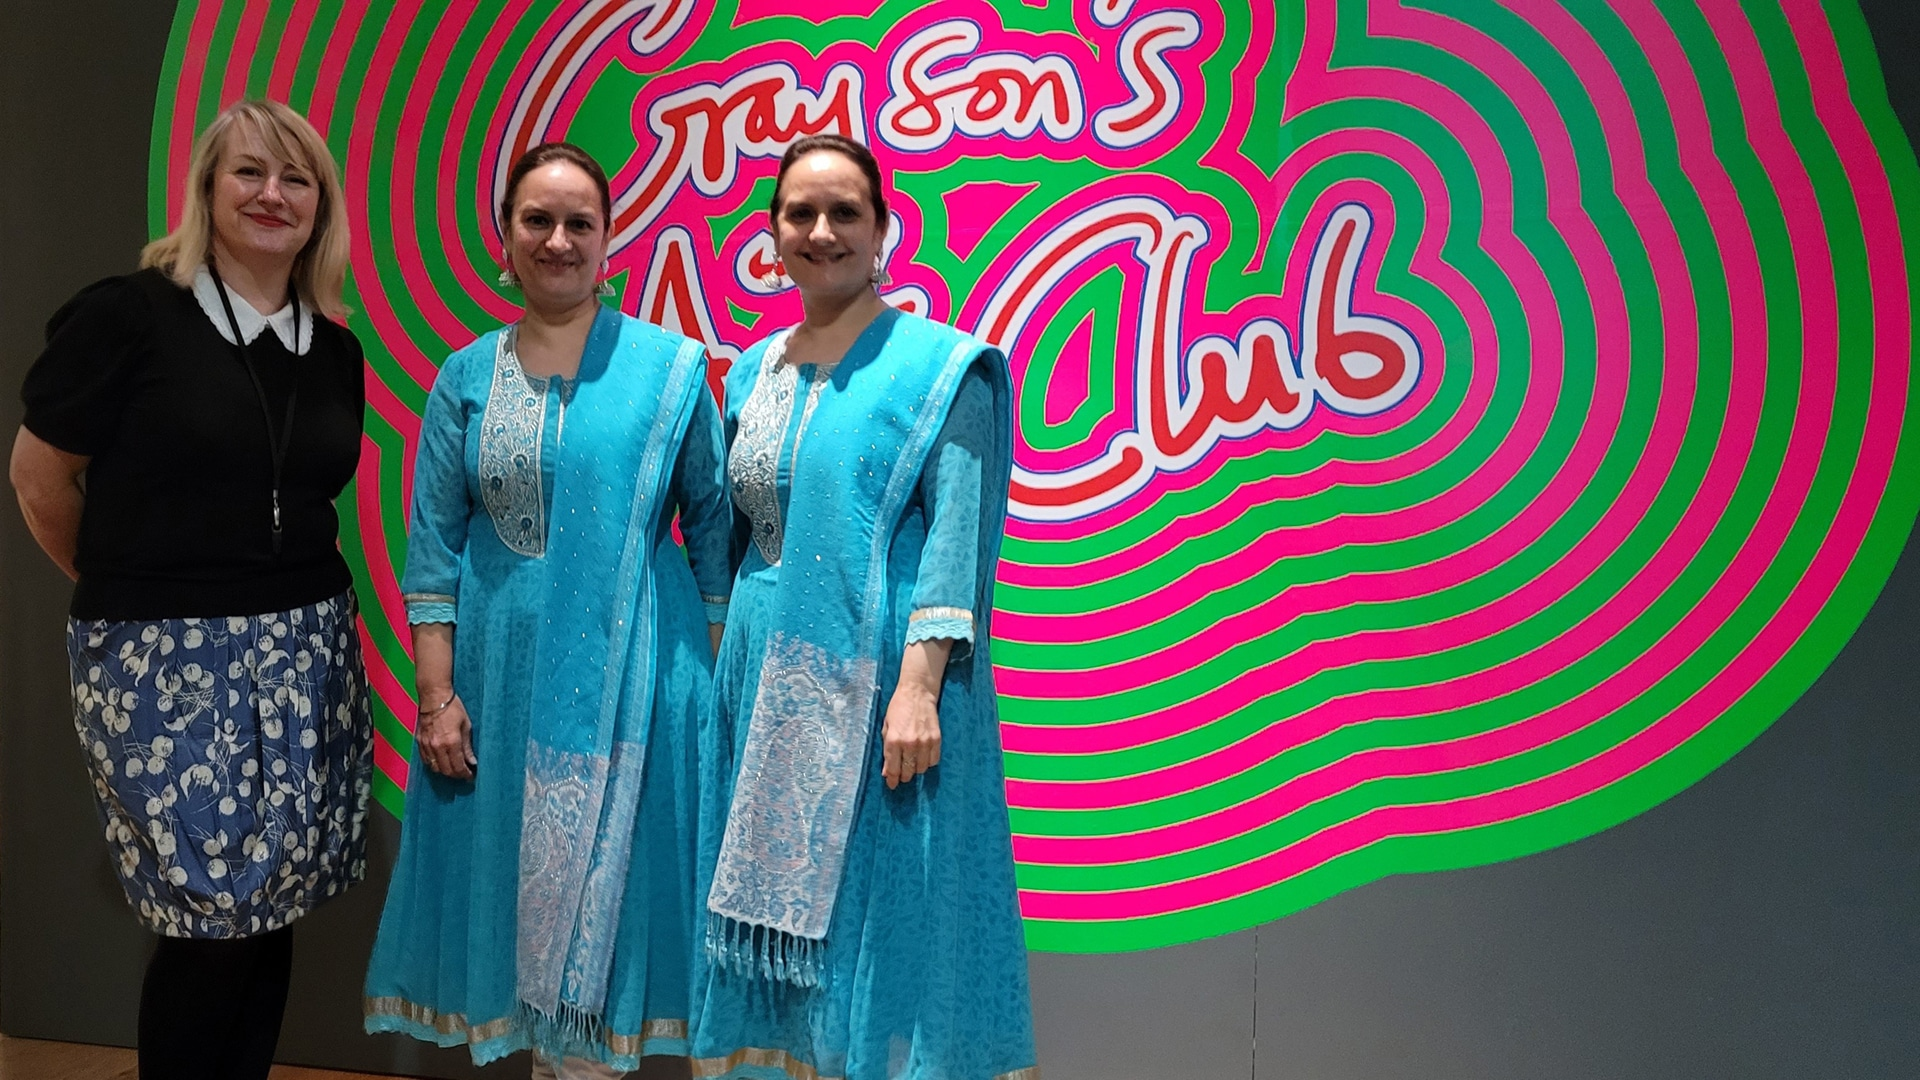 SODEXO Self - Portraits with The Singh Twins